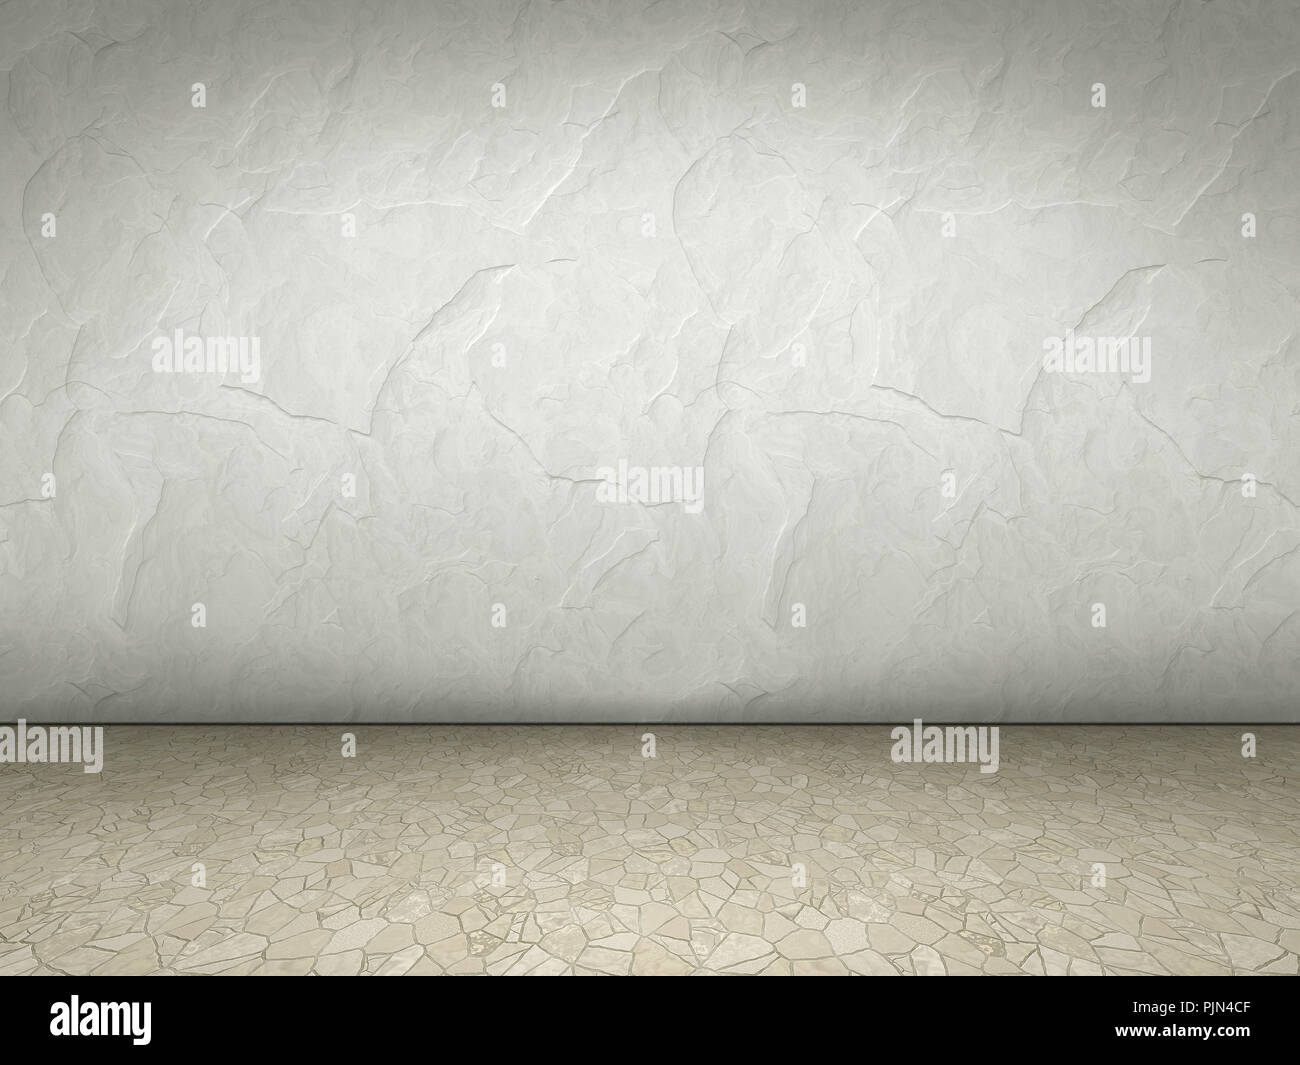 Fesselnd An Empty Space With White Wall, Ein Leerer Raum Mit Weisser Wand   Stock  Image